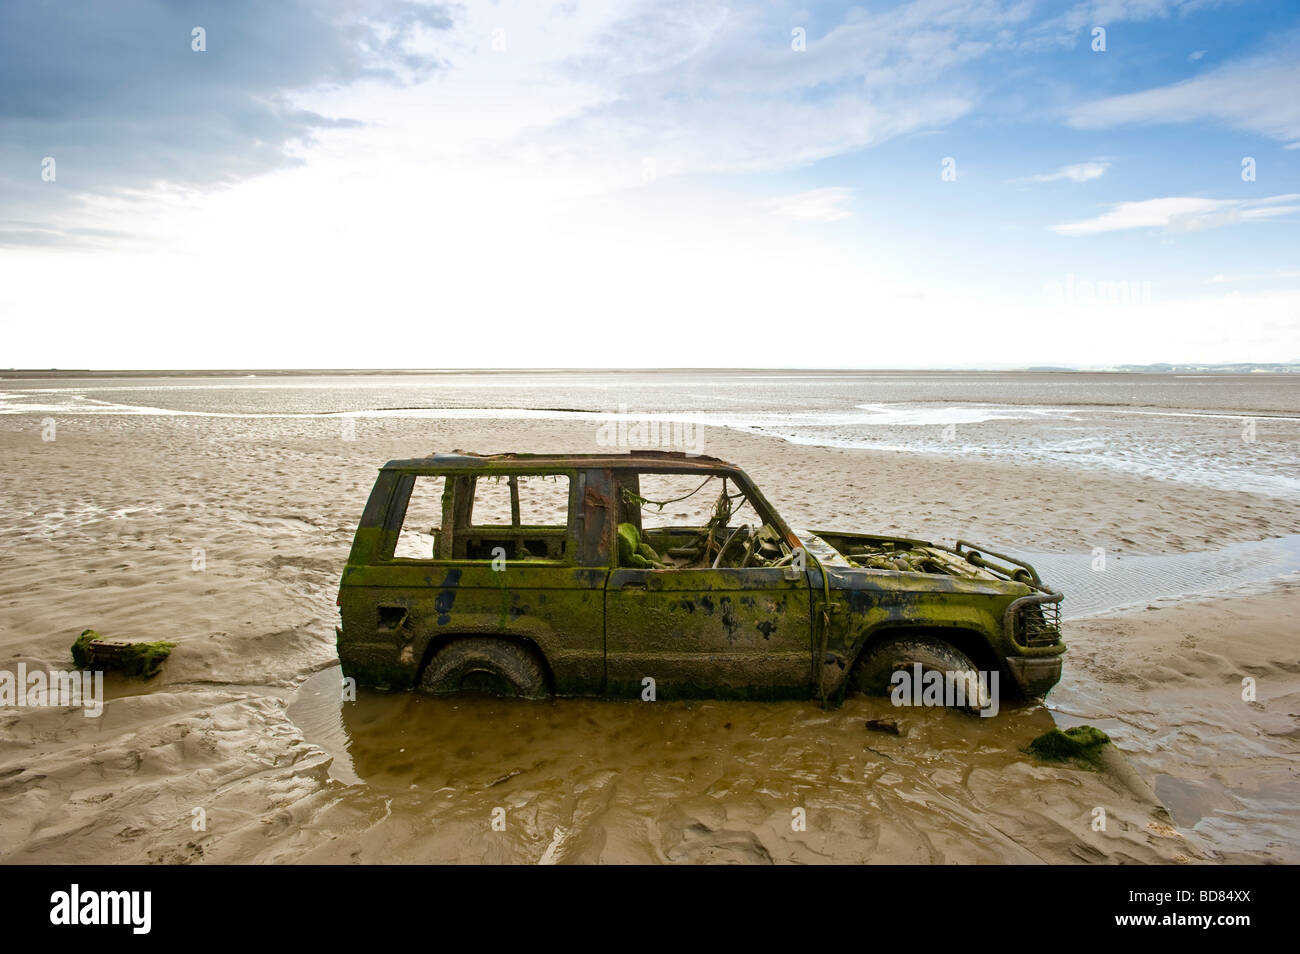 Buy Wrecked Car >> Abandoned car partially buried in sand Morecambe Bay Stock Photo: 25380402 - Alamy